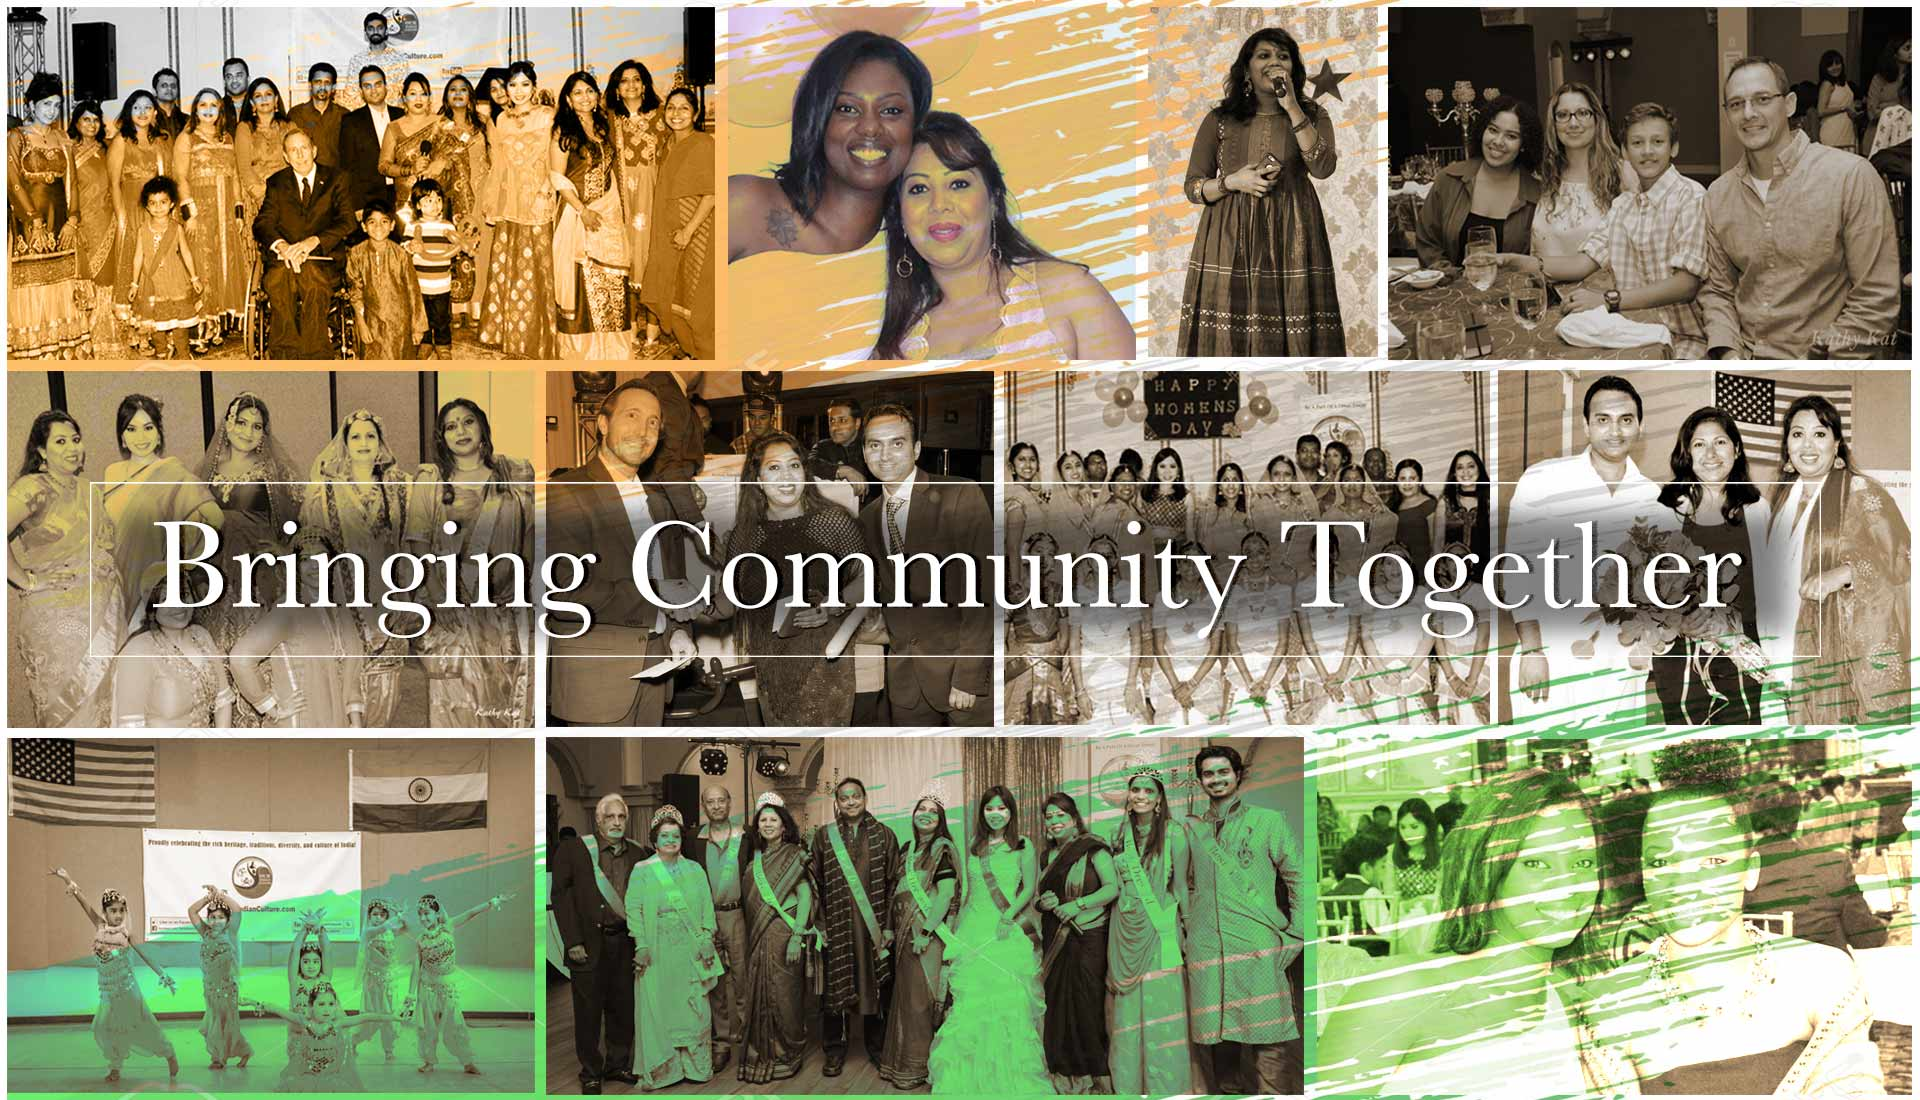 Our Indian Culture is Bringing-Community-Together by organizing various Indian Events